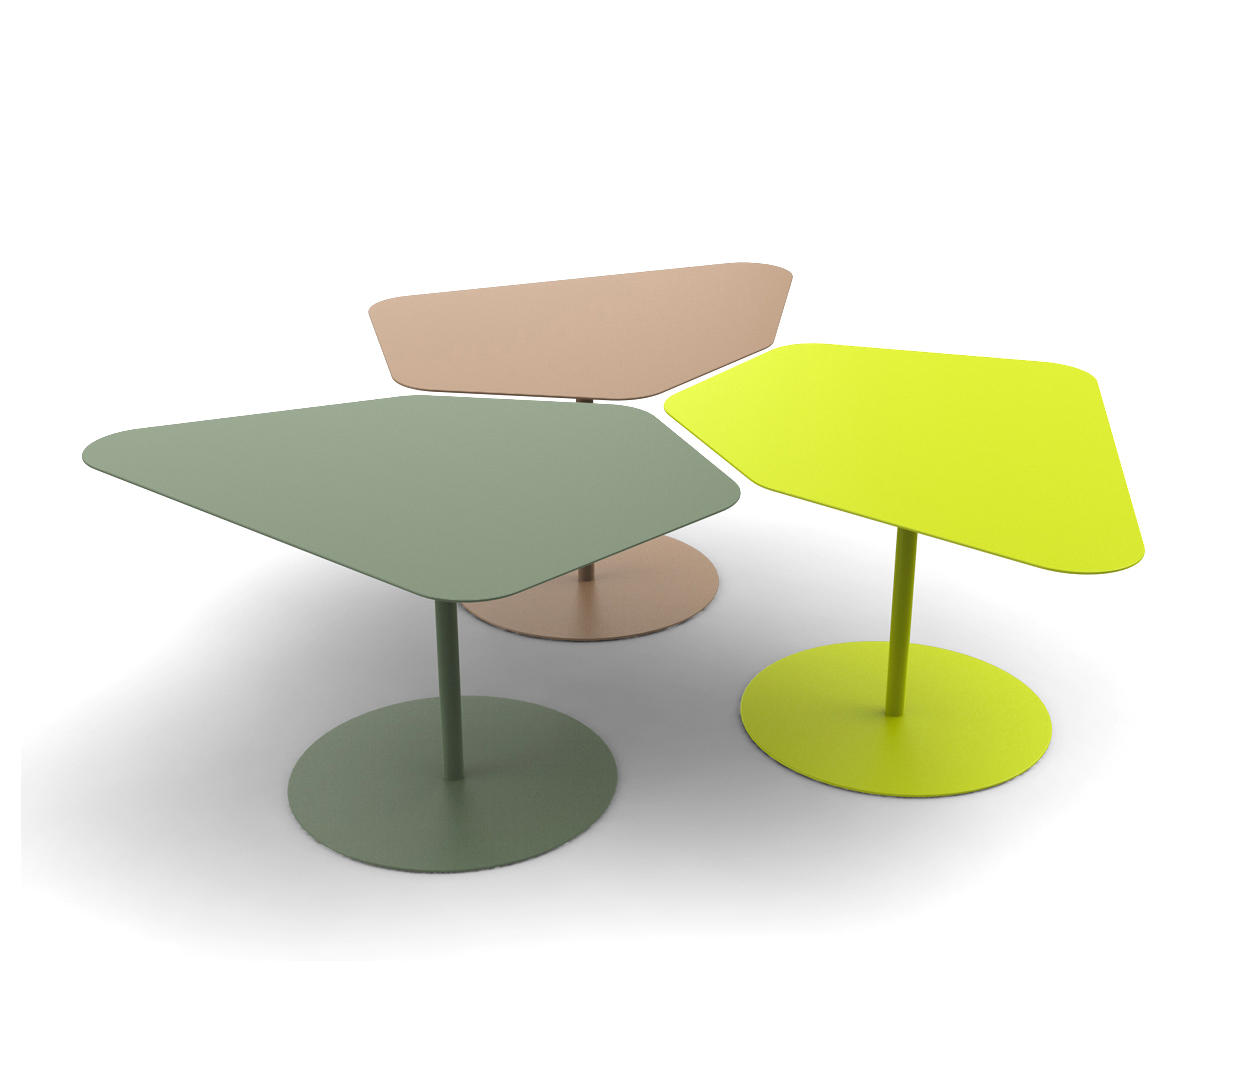 Kona Low Table Coffee Tables From Matiere Grise Architonic